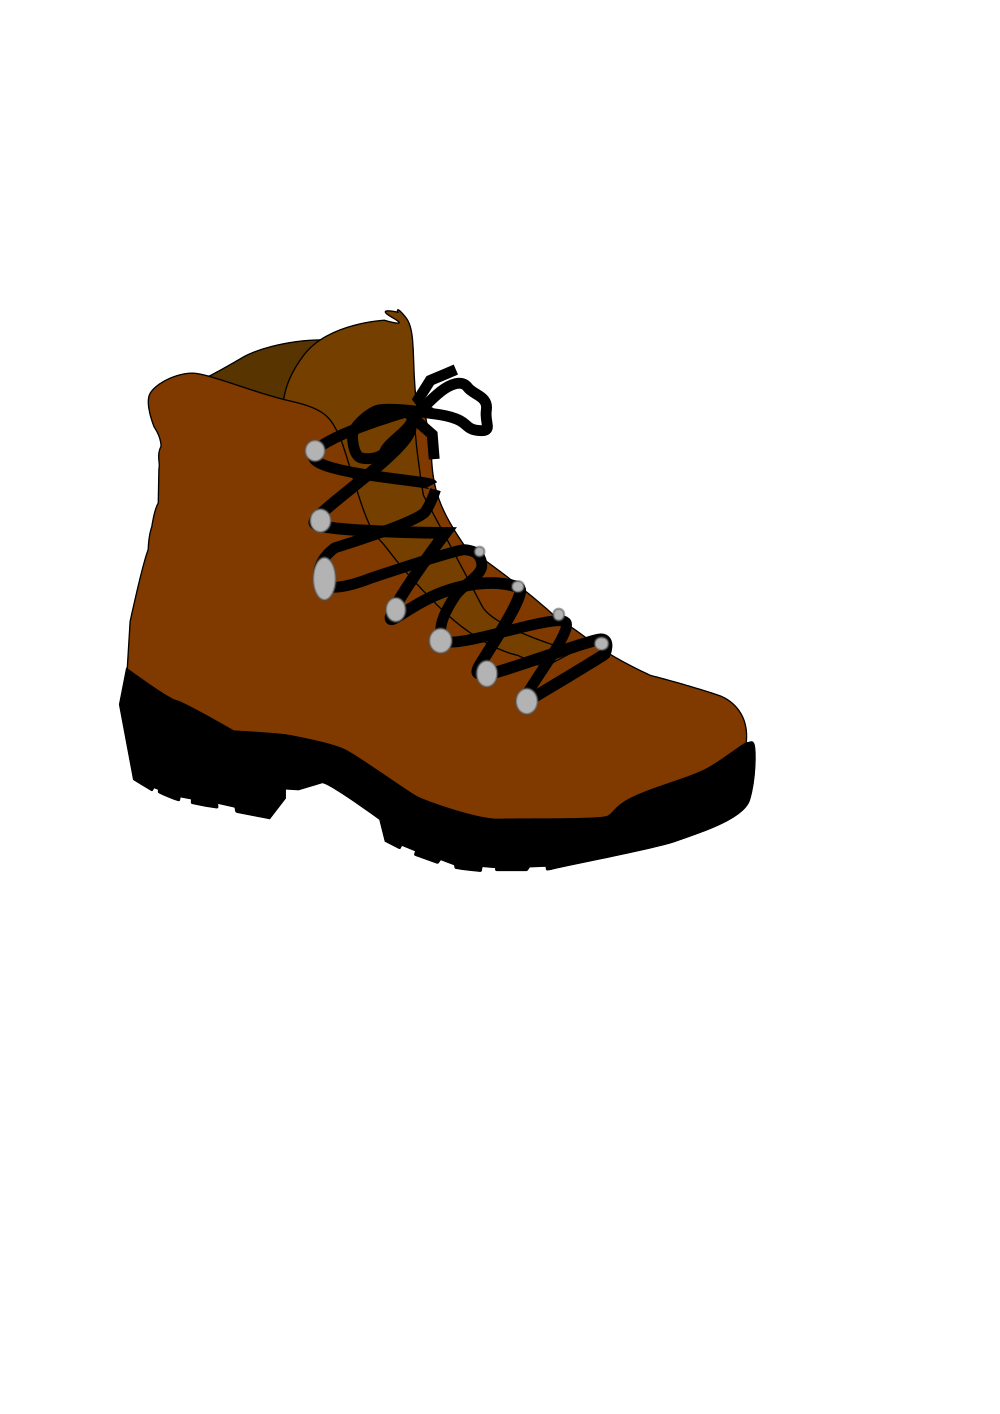 Hike clipart brown boot. Onlinelabels clip art hiking